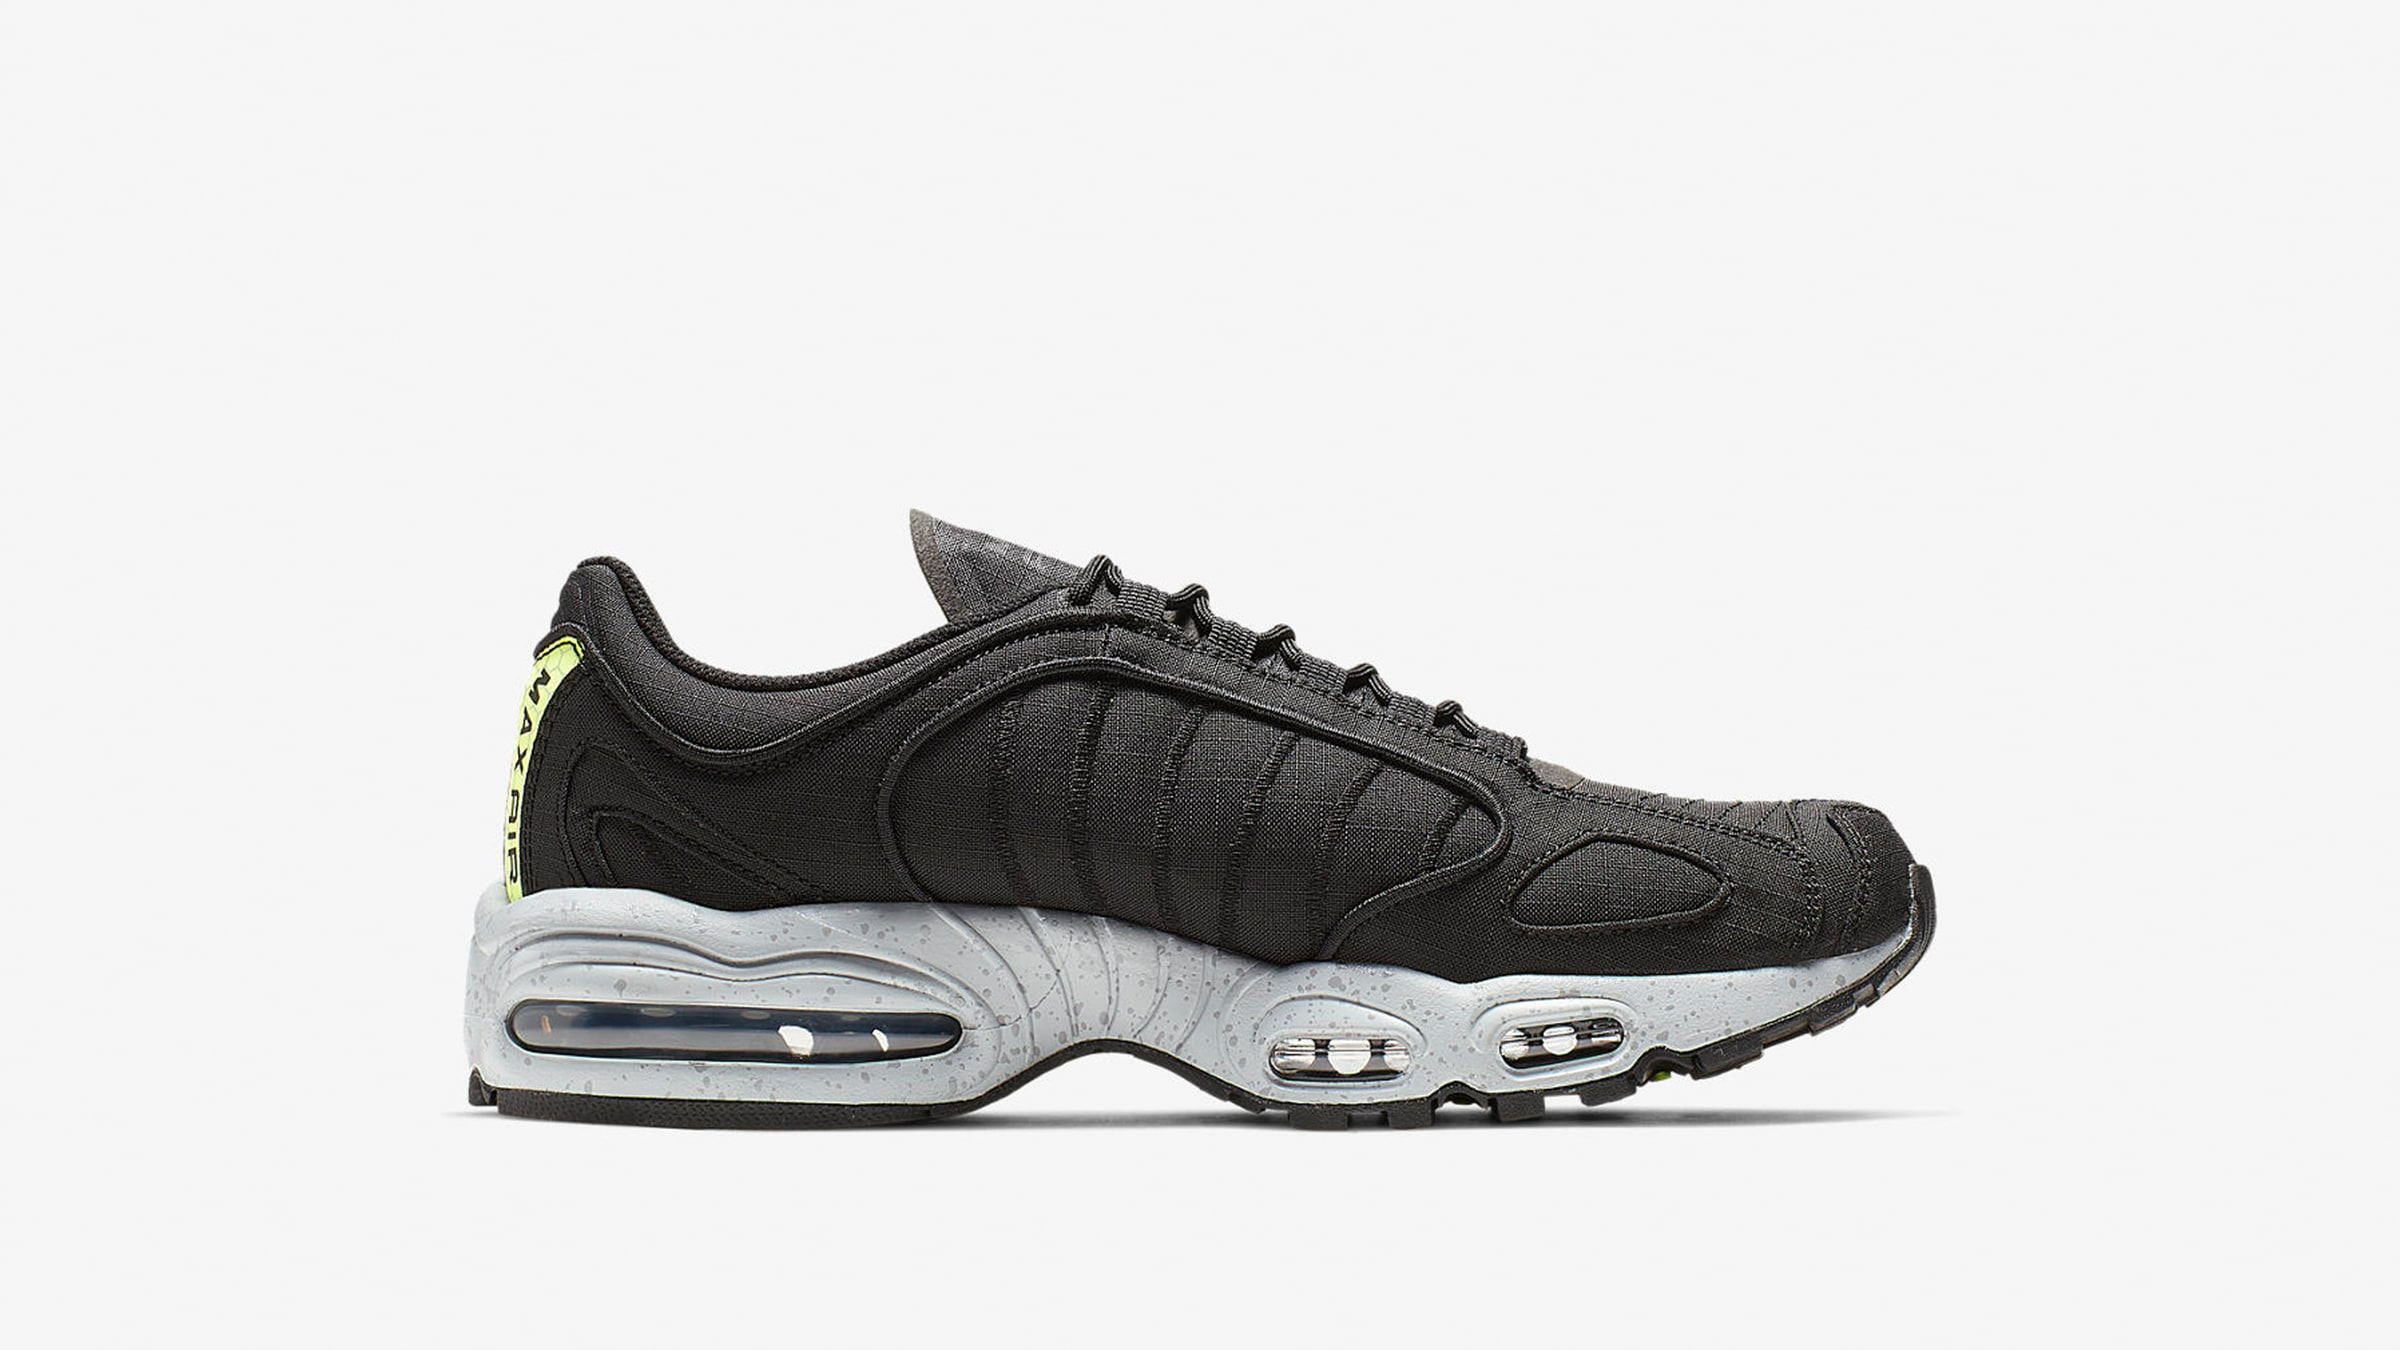 b80677051 Twenty years after it premiered the Air Max Tailwind IV, Nike brings back  the OG in a slick new colourway that's sure to put a skip in your step.